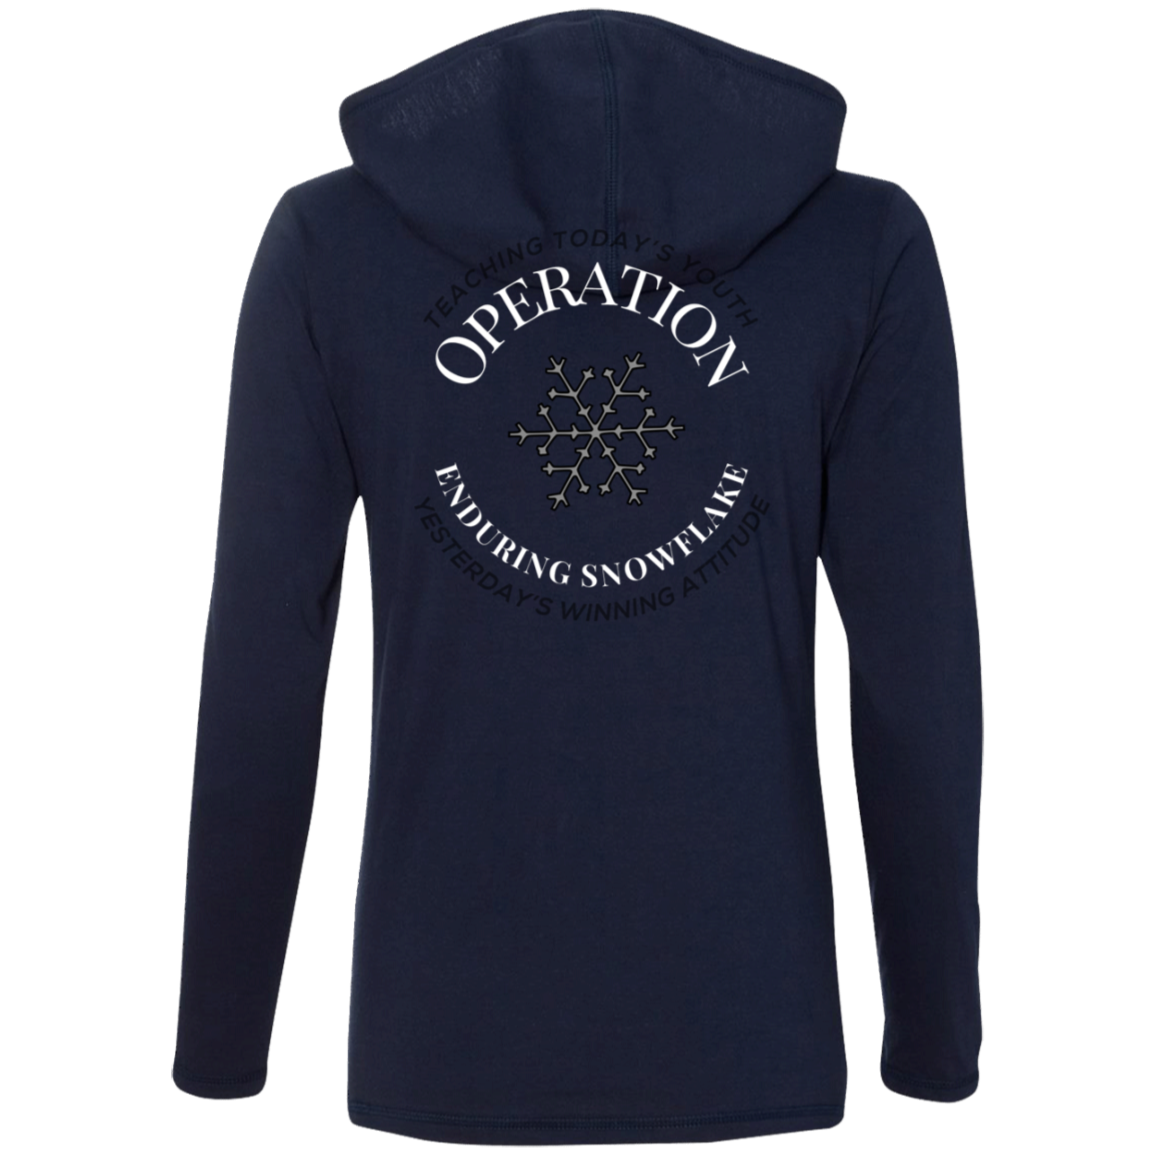 Operation Enduring Snowflake - Ladies' LS T-Shirt Hoodie